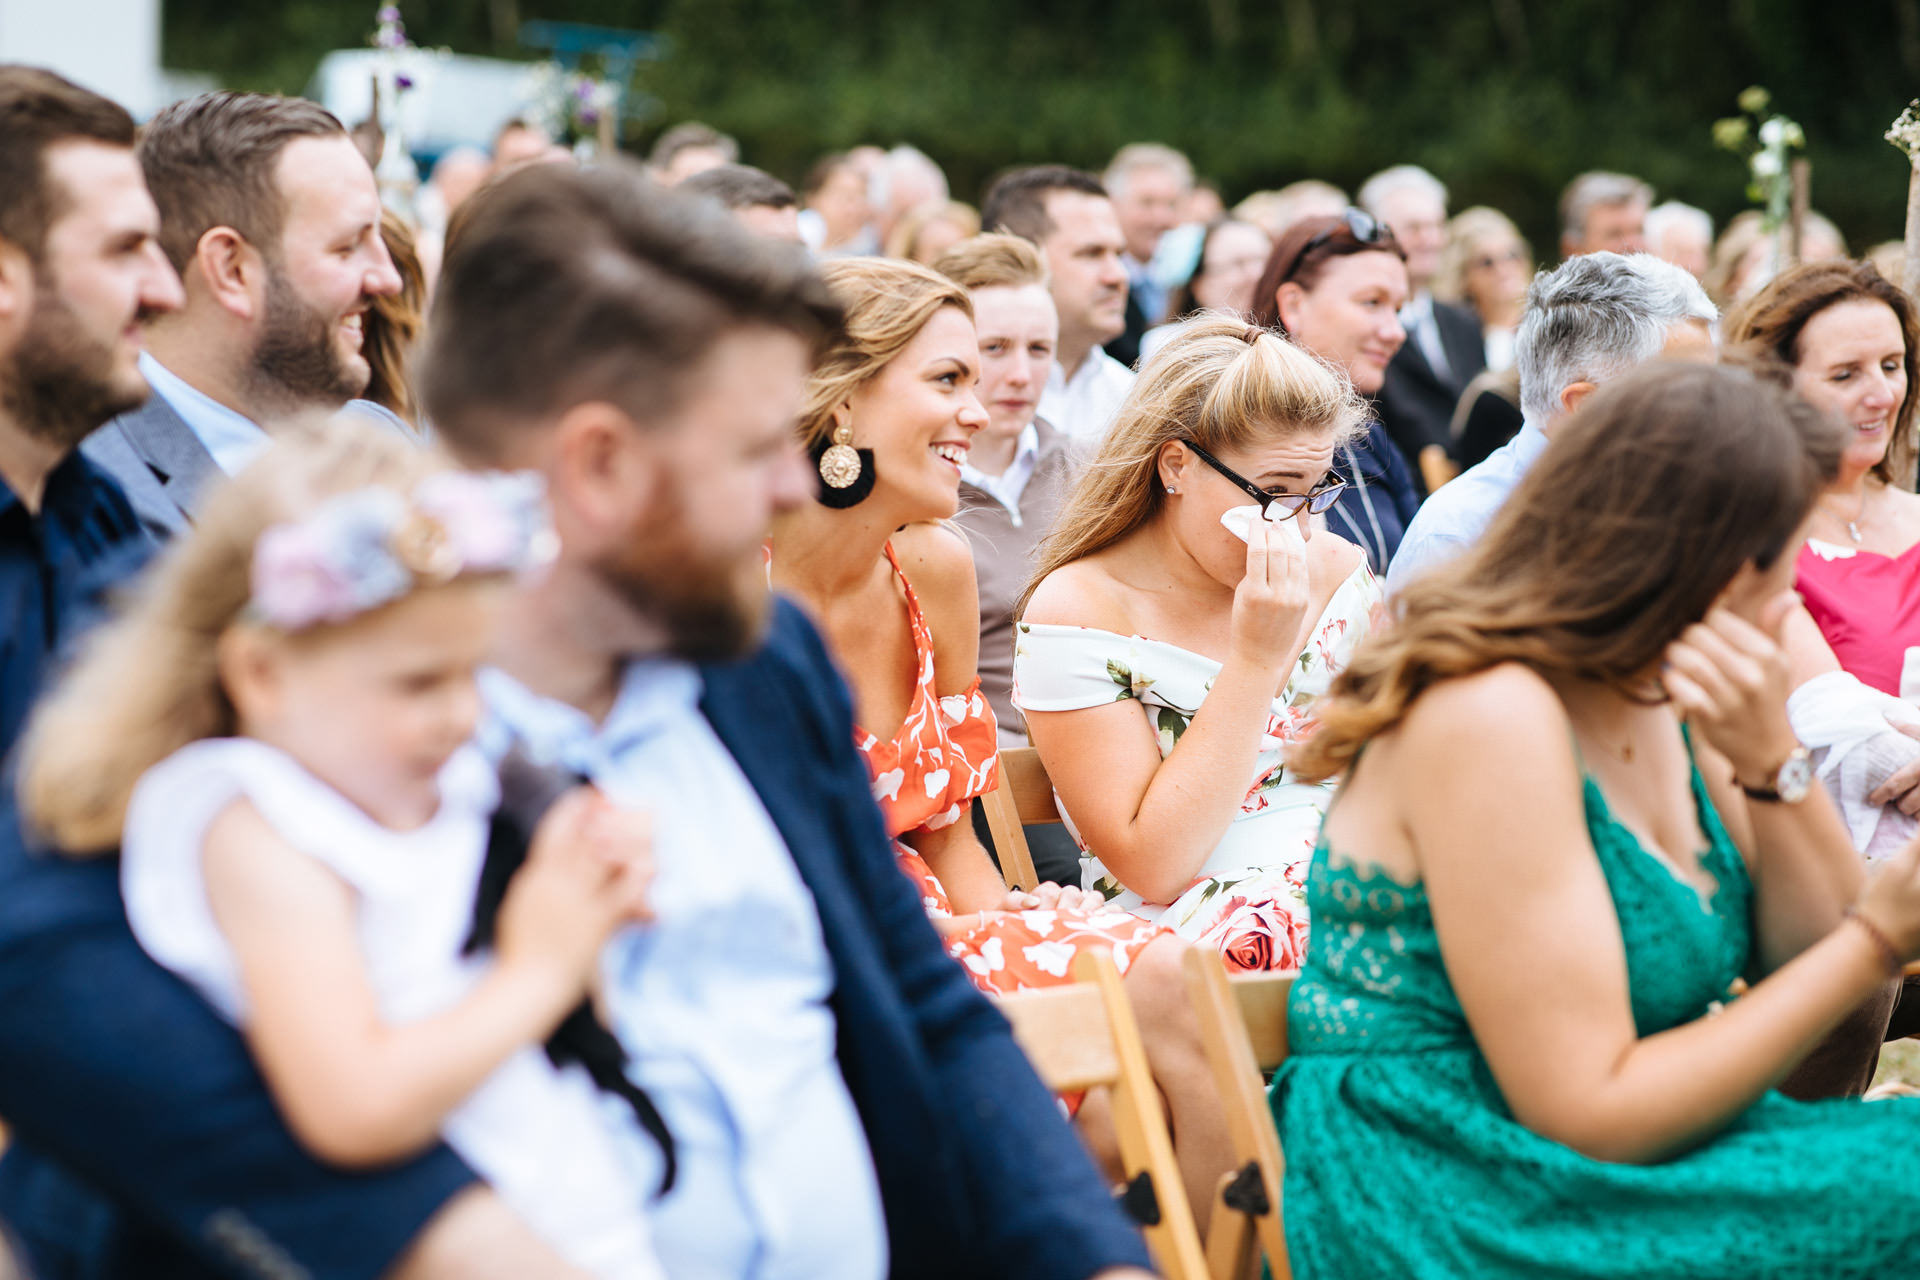 wedding guest dabbing her eyes with tissue during wedding ceremony